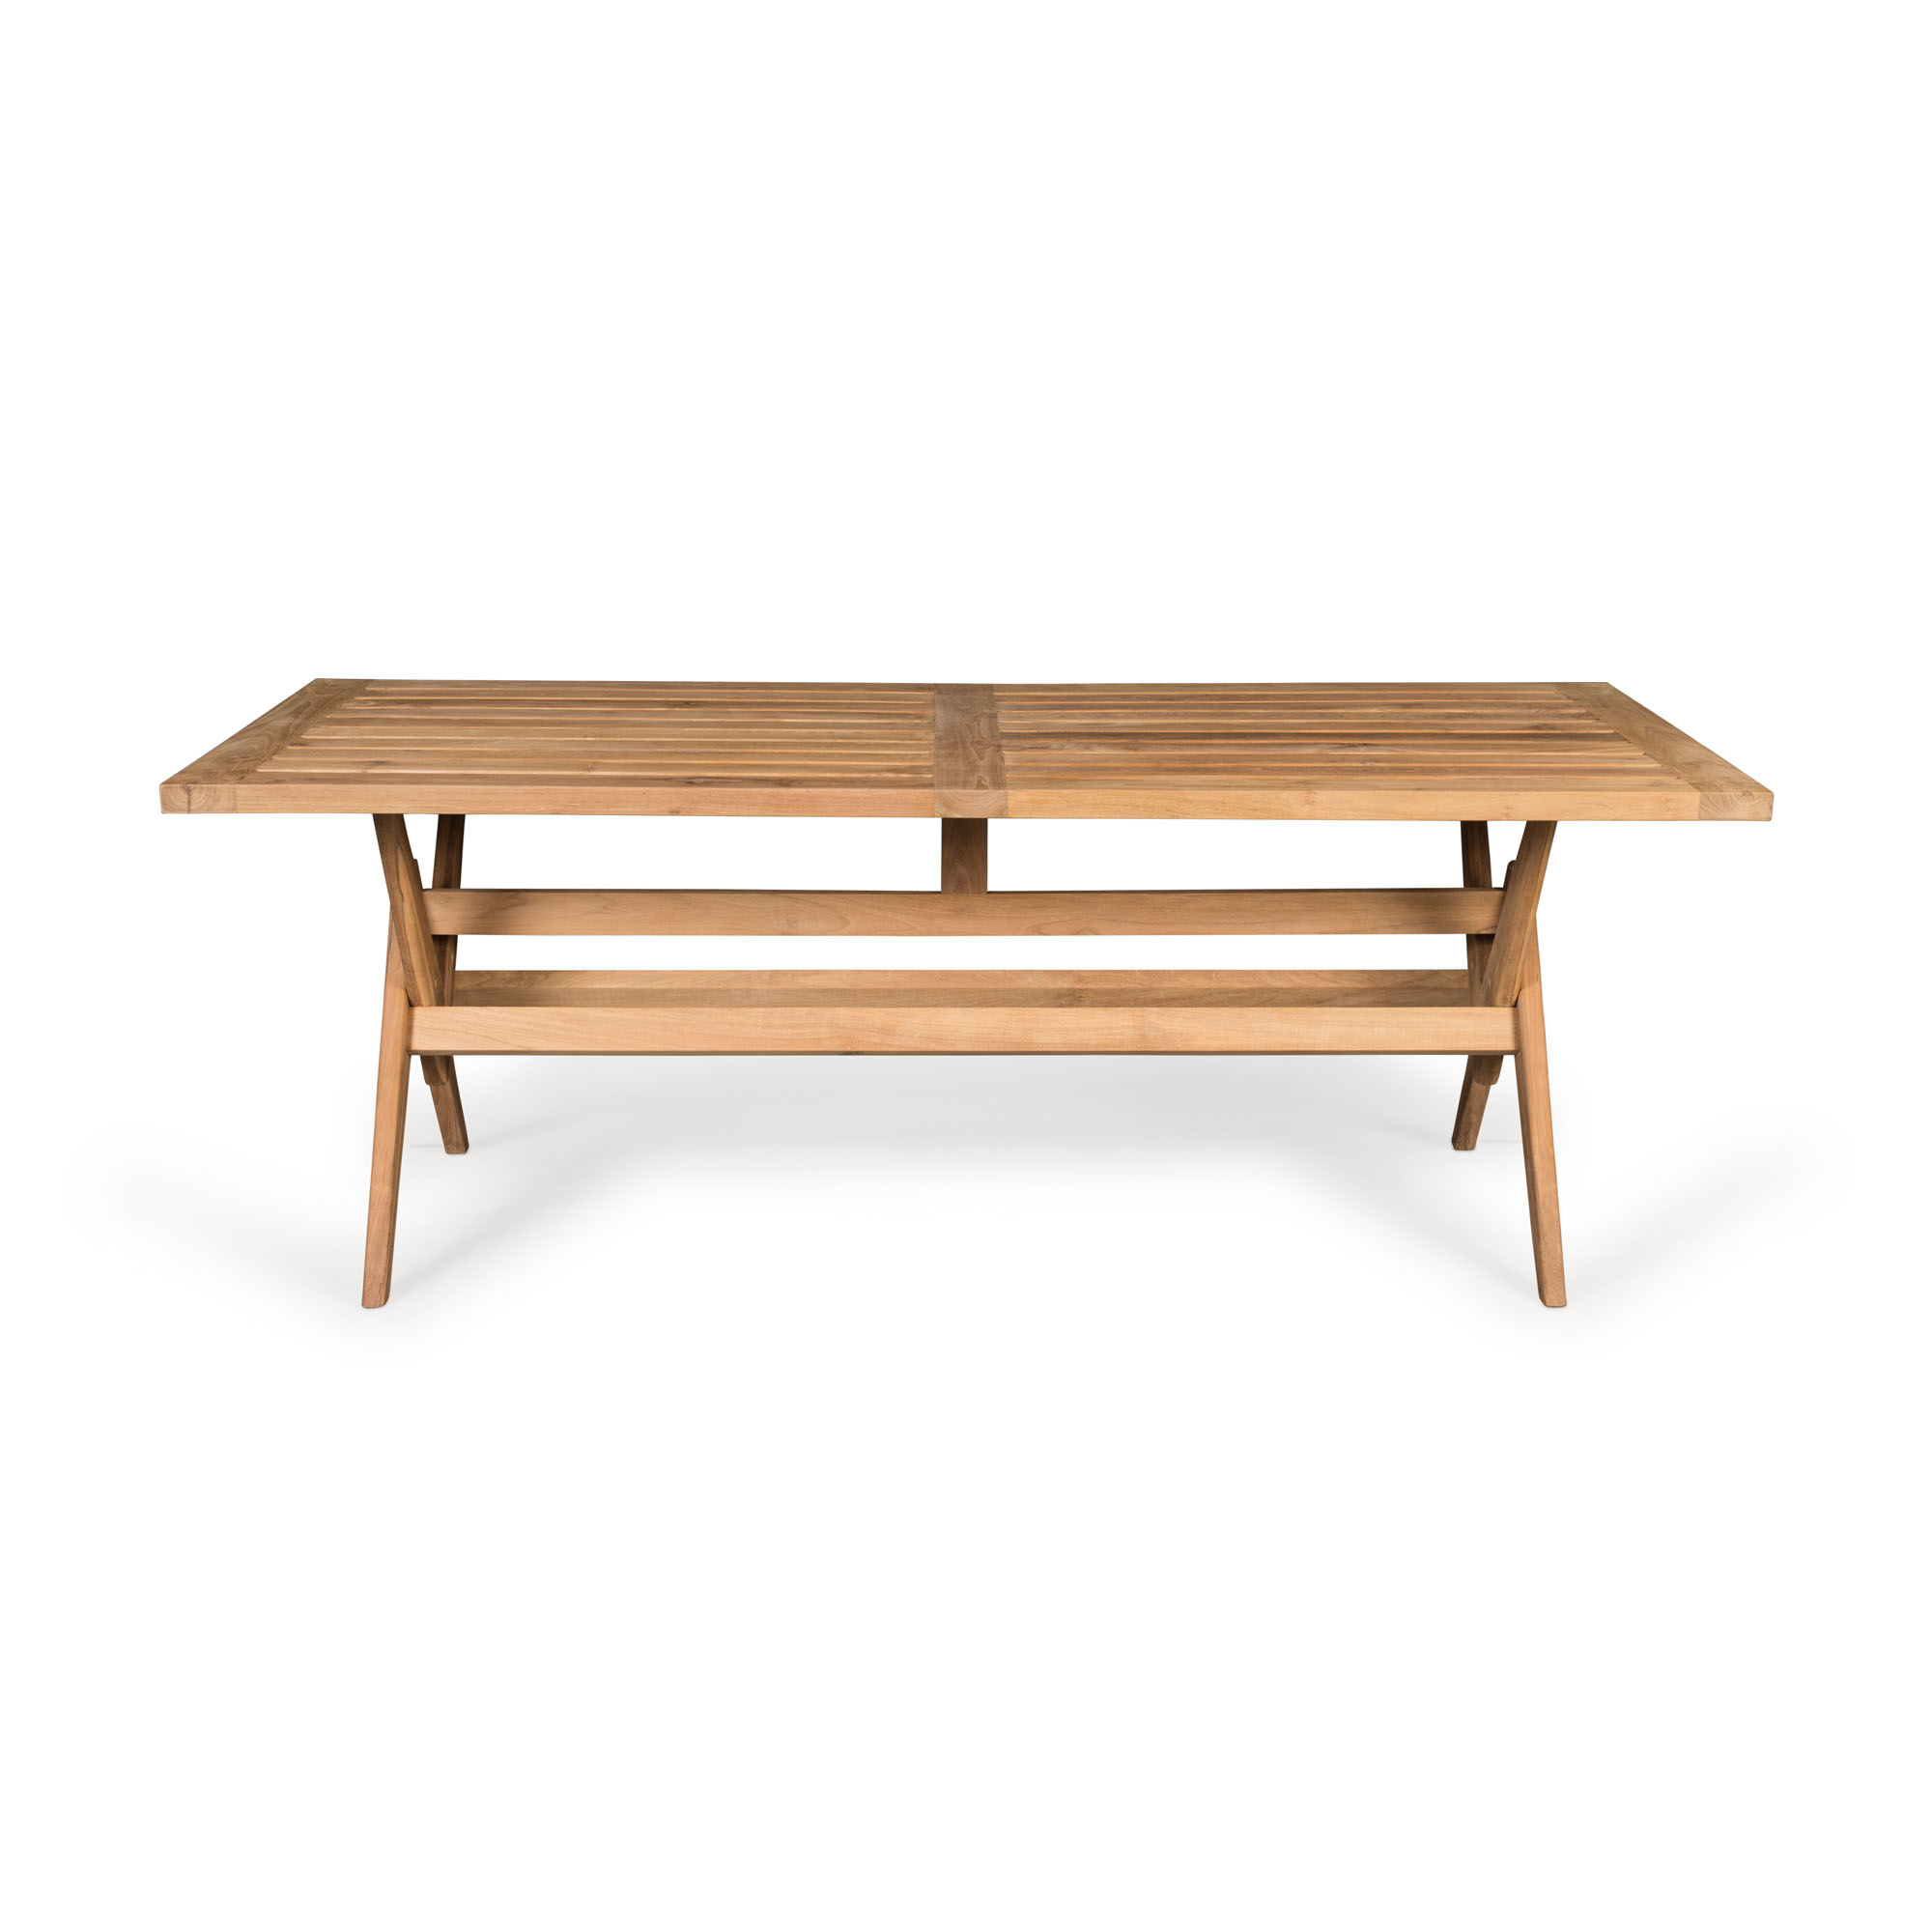 Dining Table W.T.H. 220 - Teak Outdoor-3